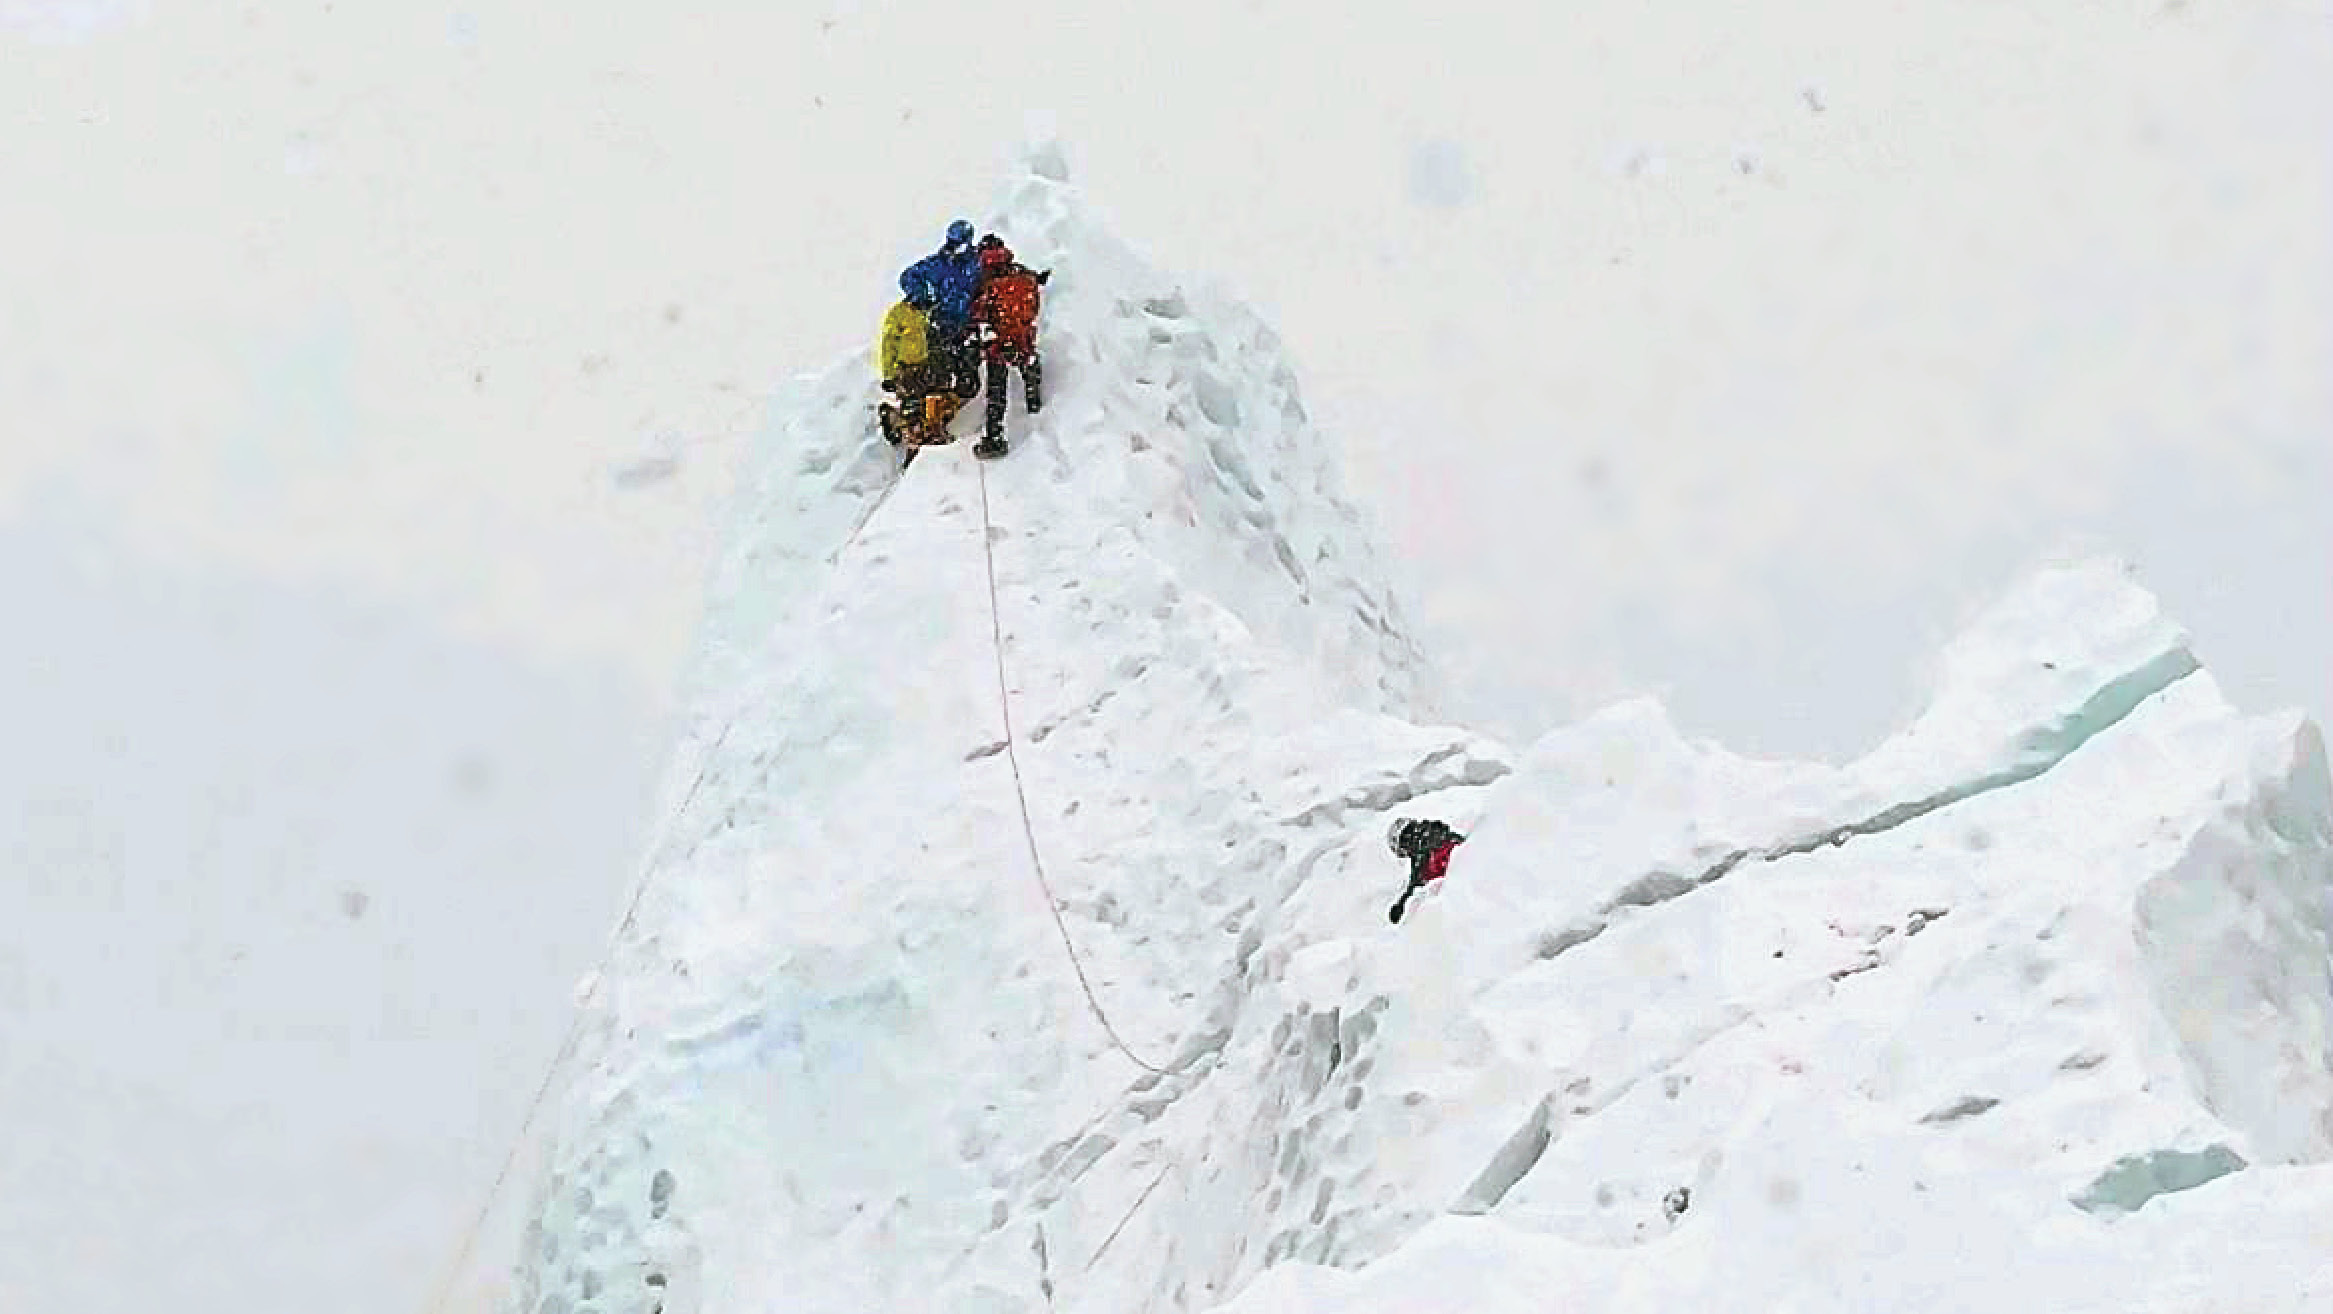 Deny Farnworth climbing Mt. Everest with other climbers.